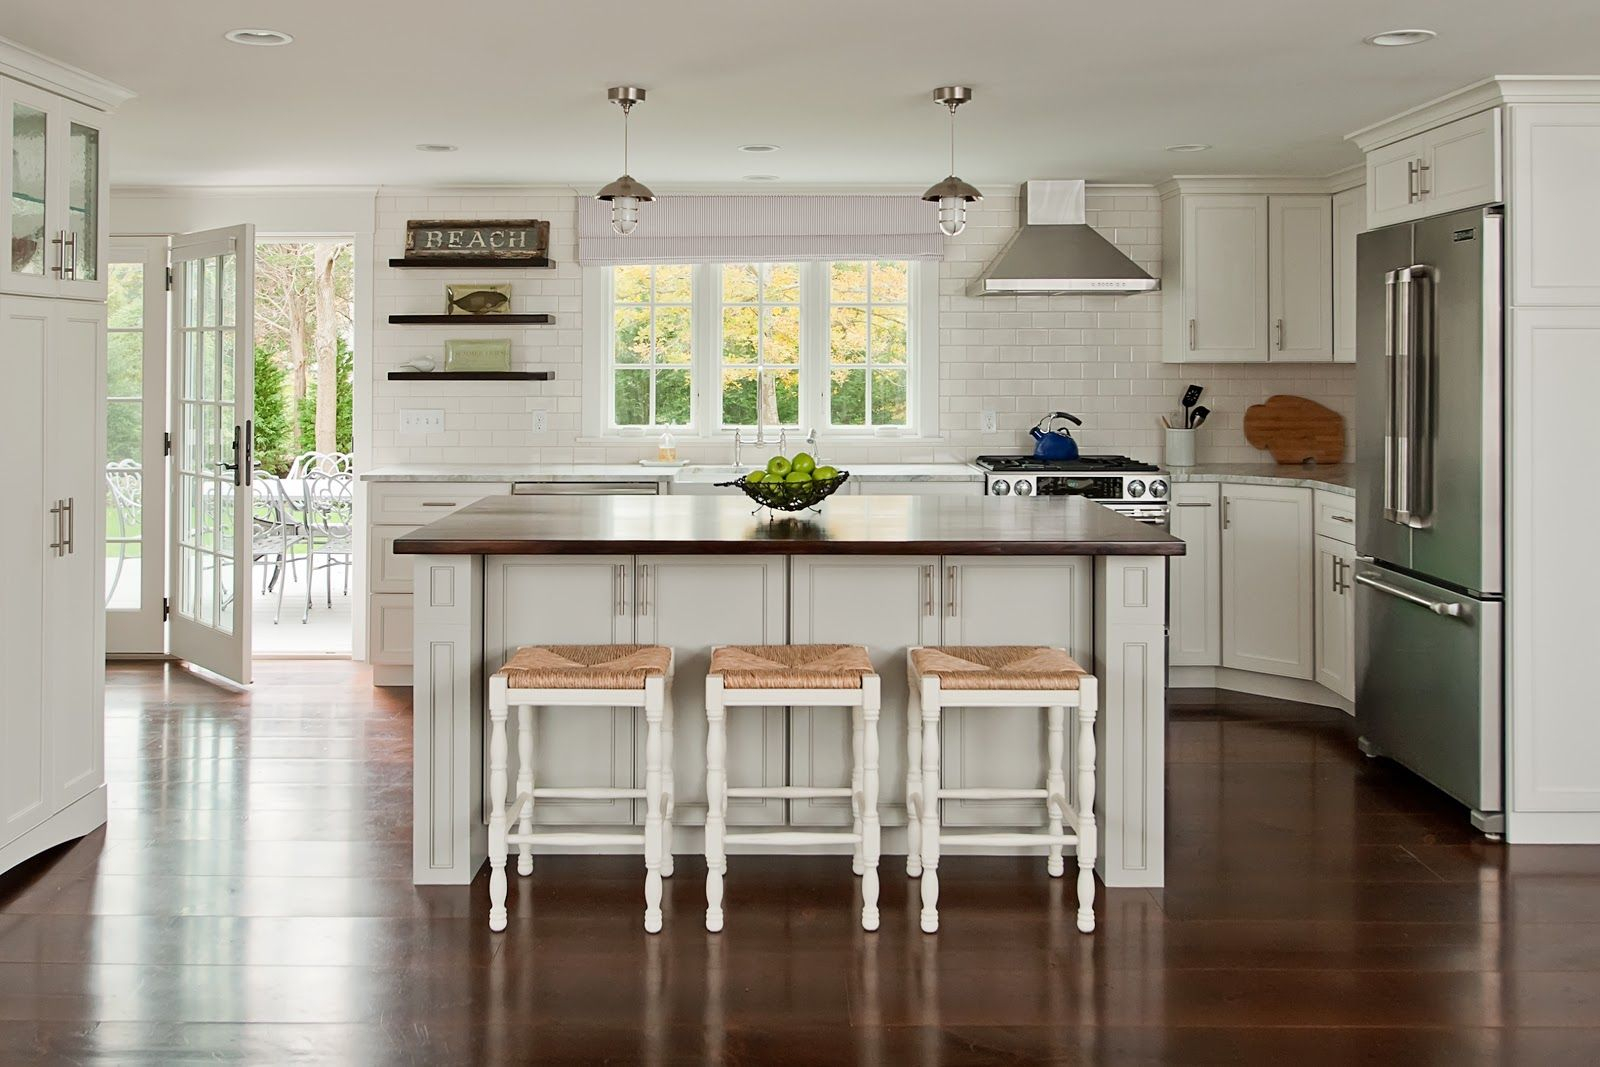 Small Cape Cod Kitchen Ideas White Can Be Very Hot Sprinkle In A